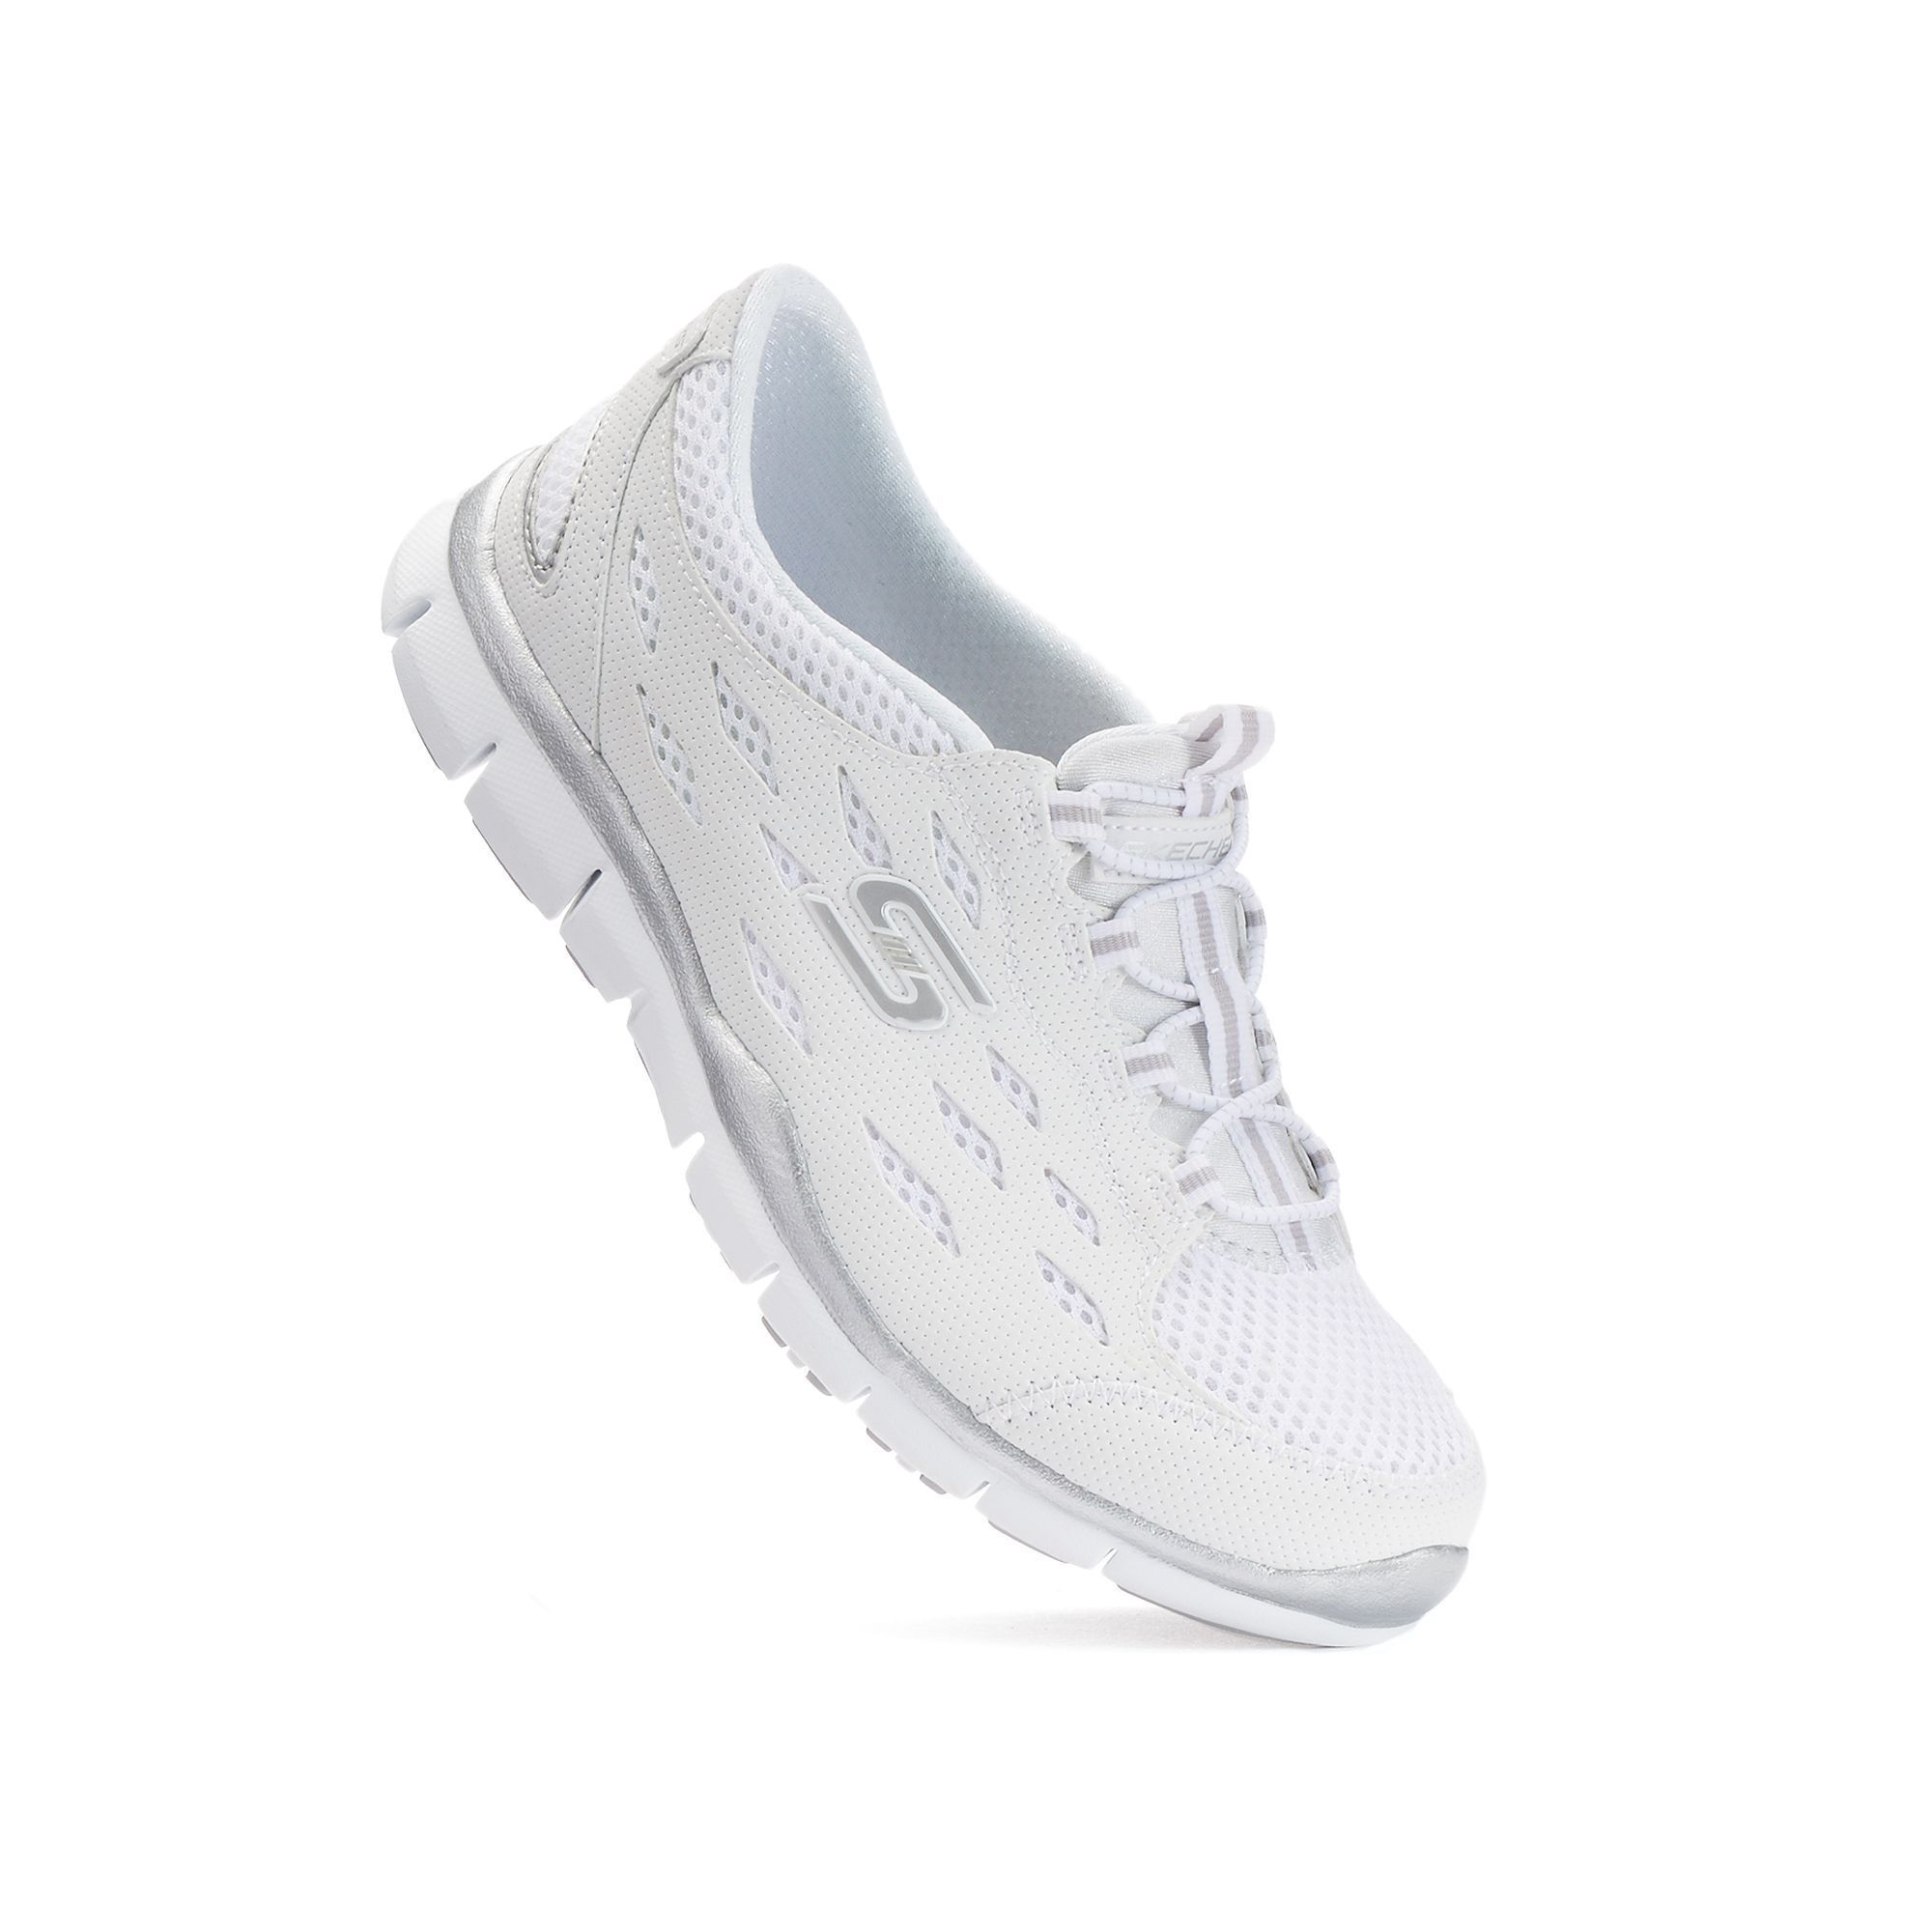 a487f6ff6c482e Skechers Gratis Mesh Bungee Women s Slip On Athletic Shoes ...